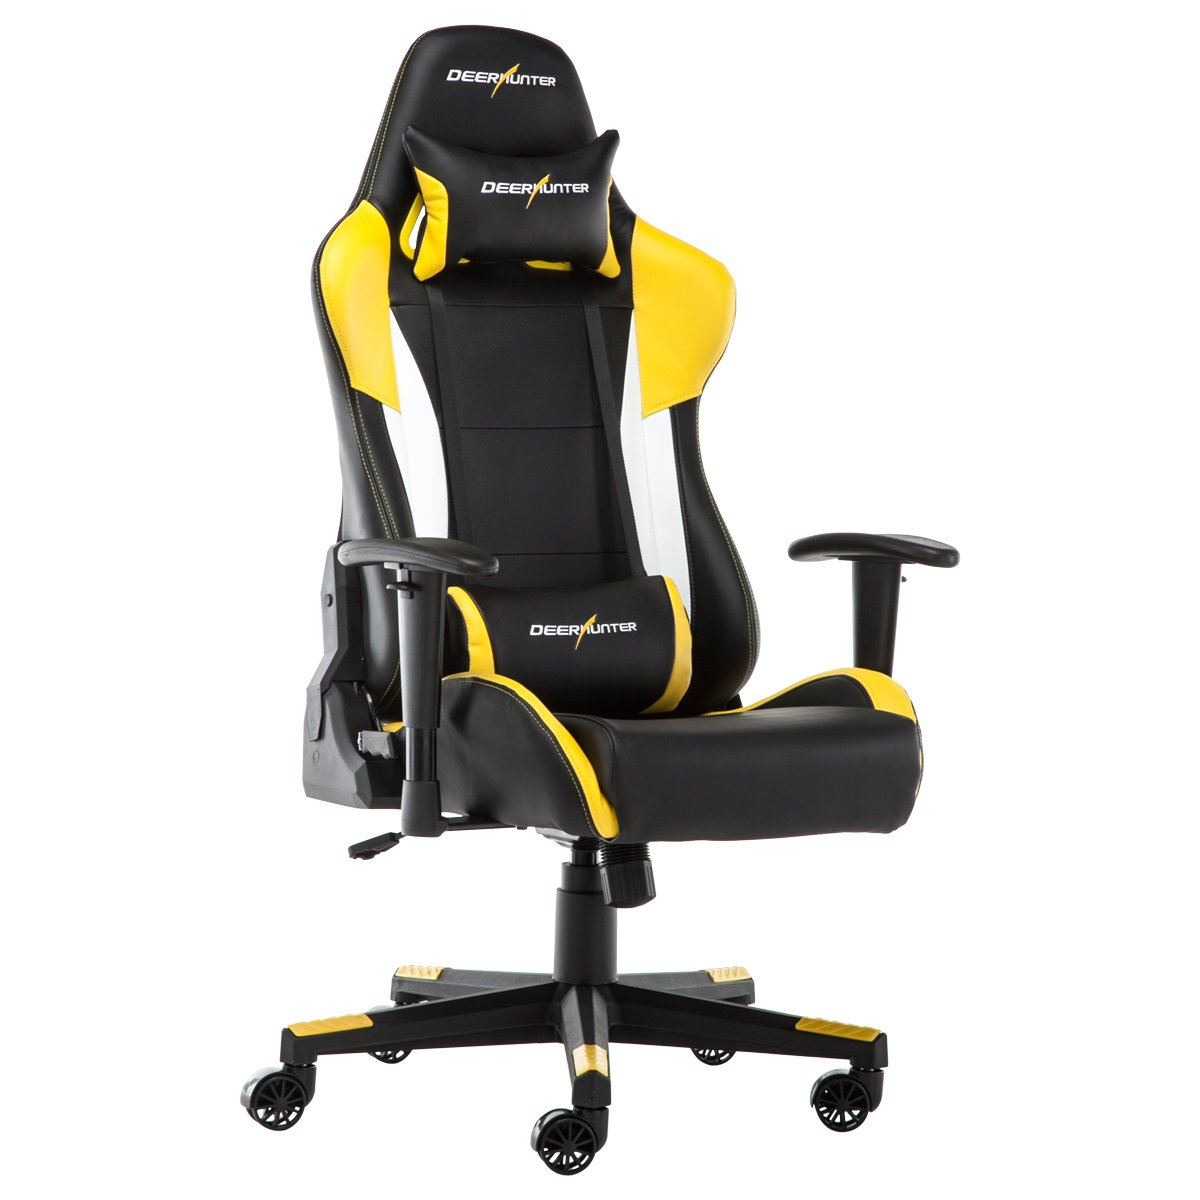 Deerhunter Gaming Chair, Leather Office Chair, High Back Ergonomic Racing Chair, Adjustable Computer Desk Swivel Chair with Headrest and Lumbar Support - Yellow